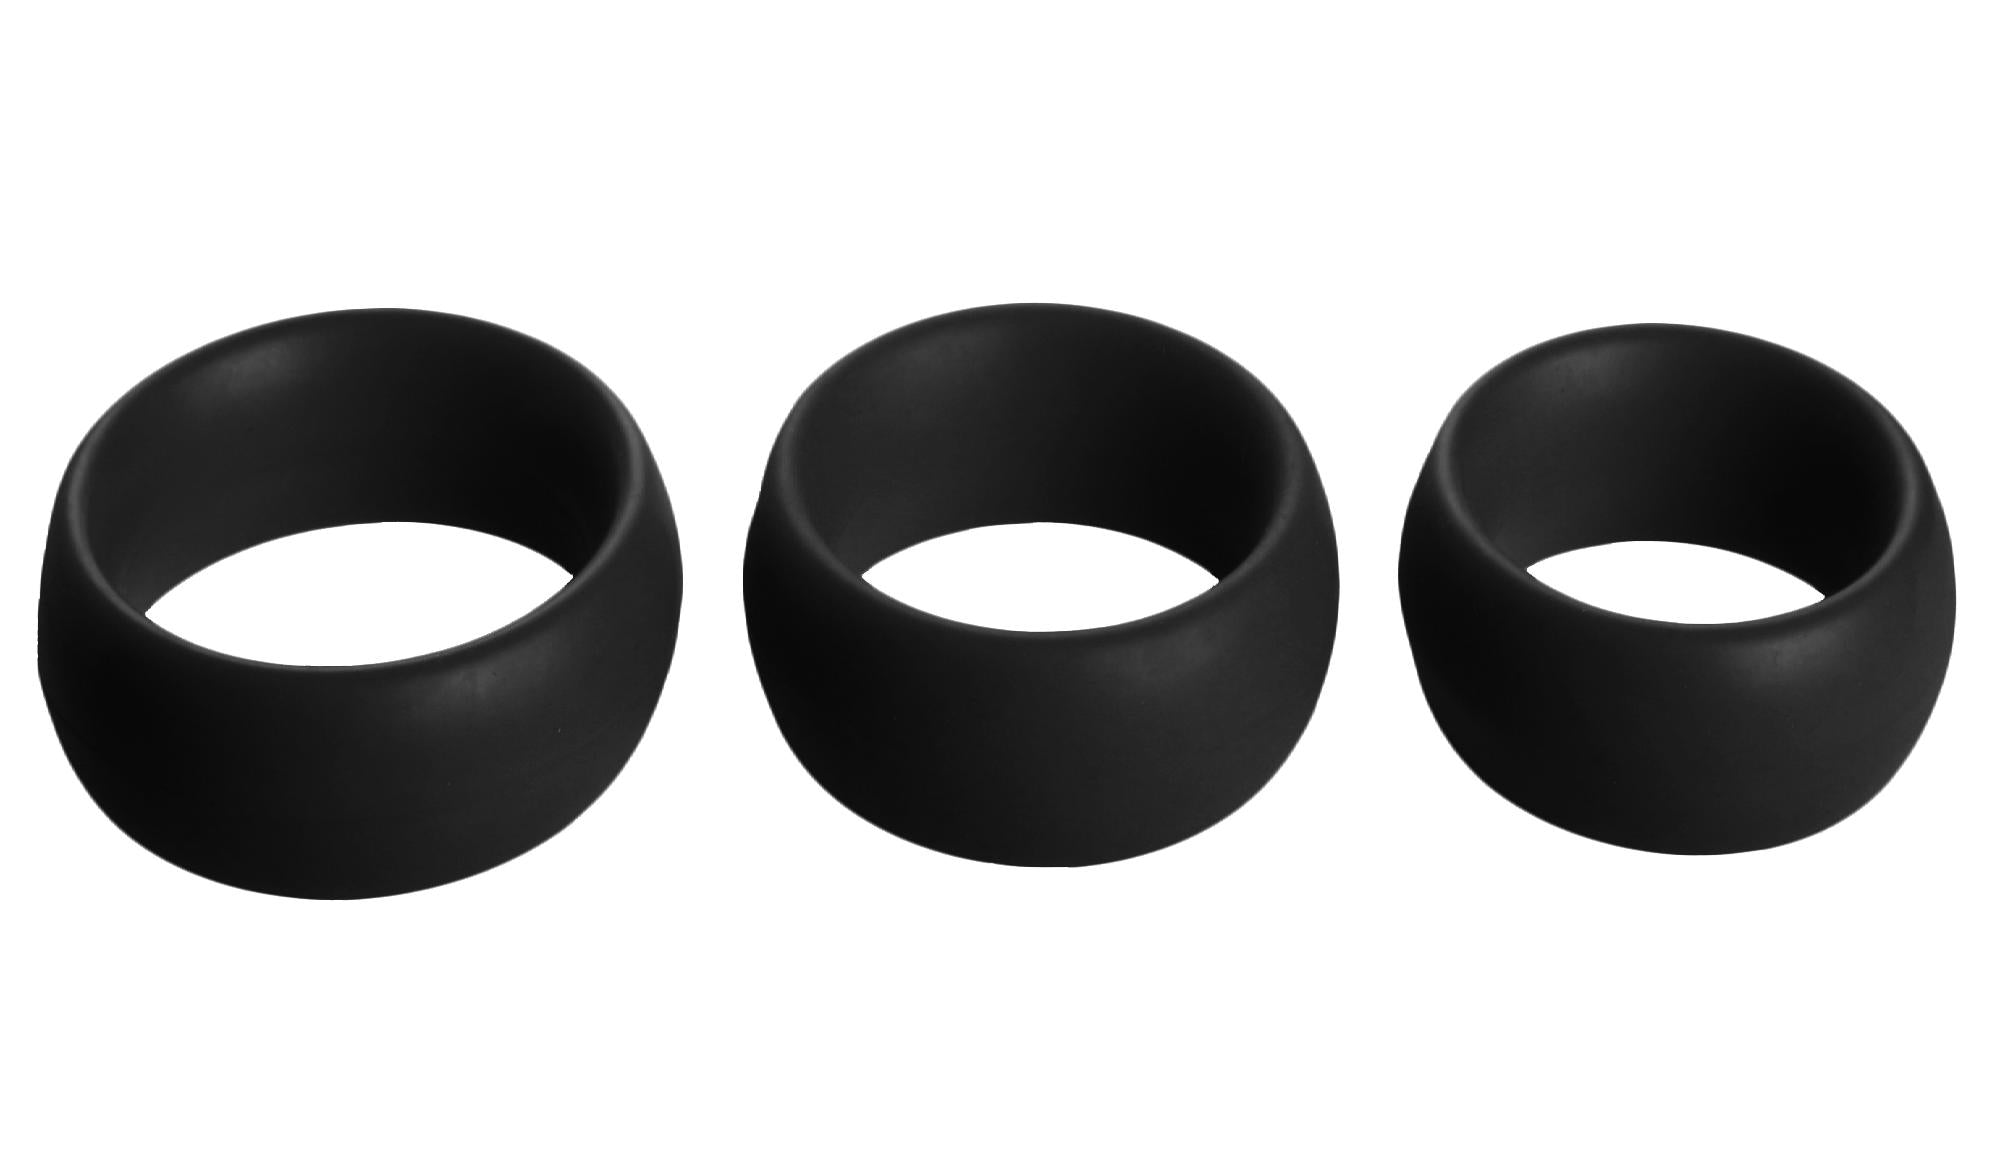 3 Piece Silicone Cock Ring Set